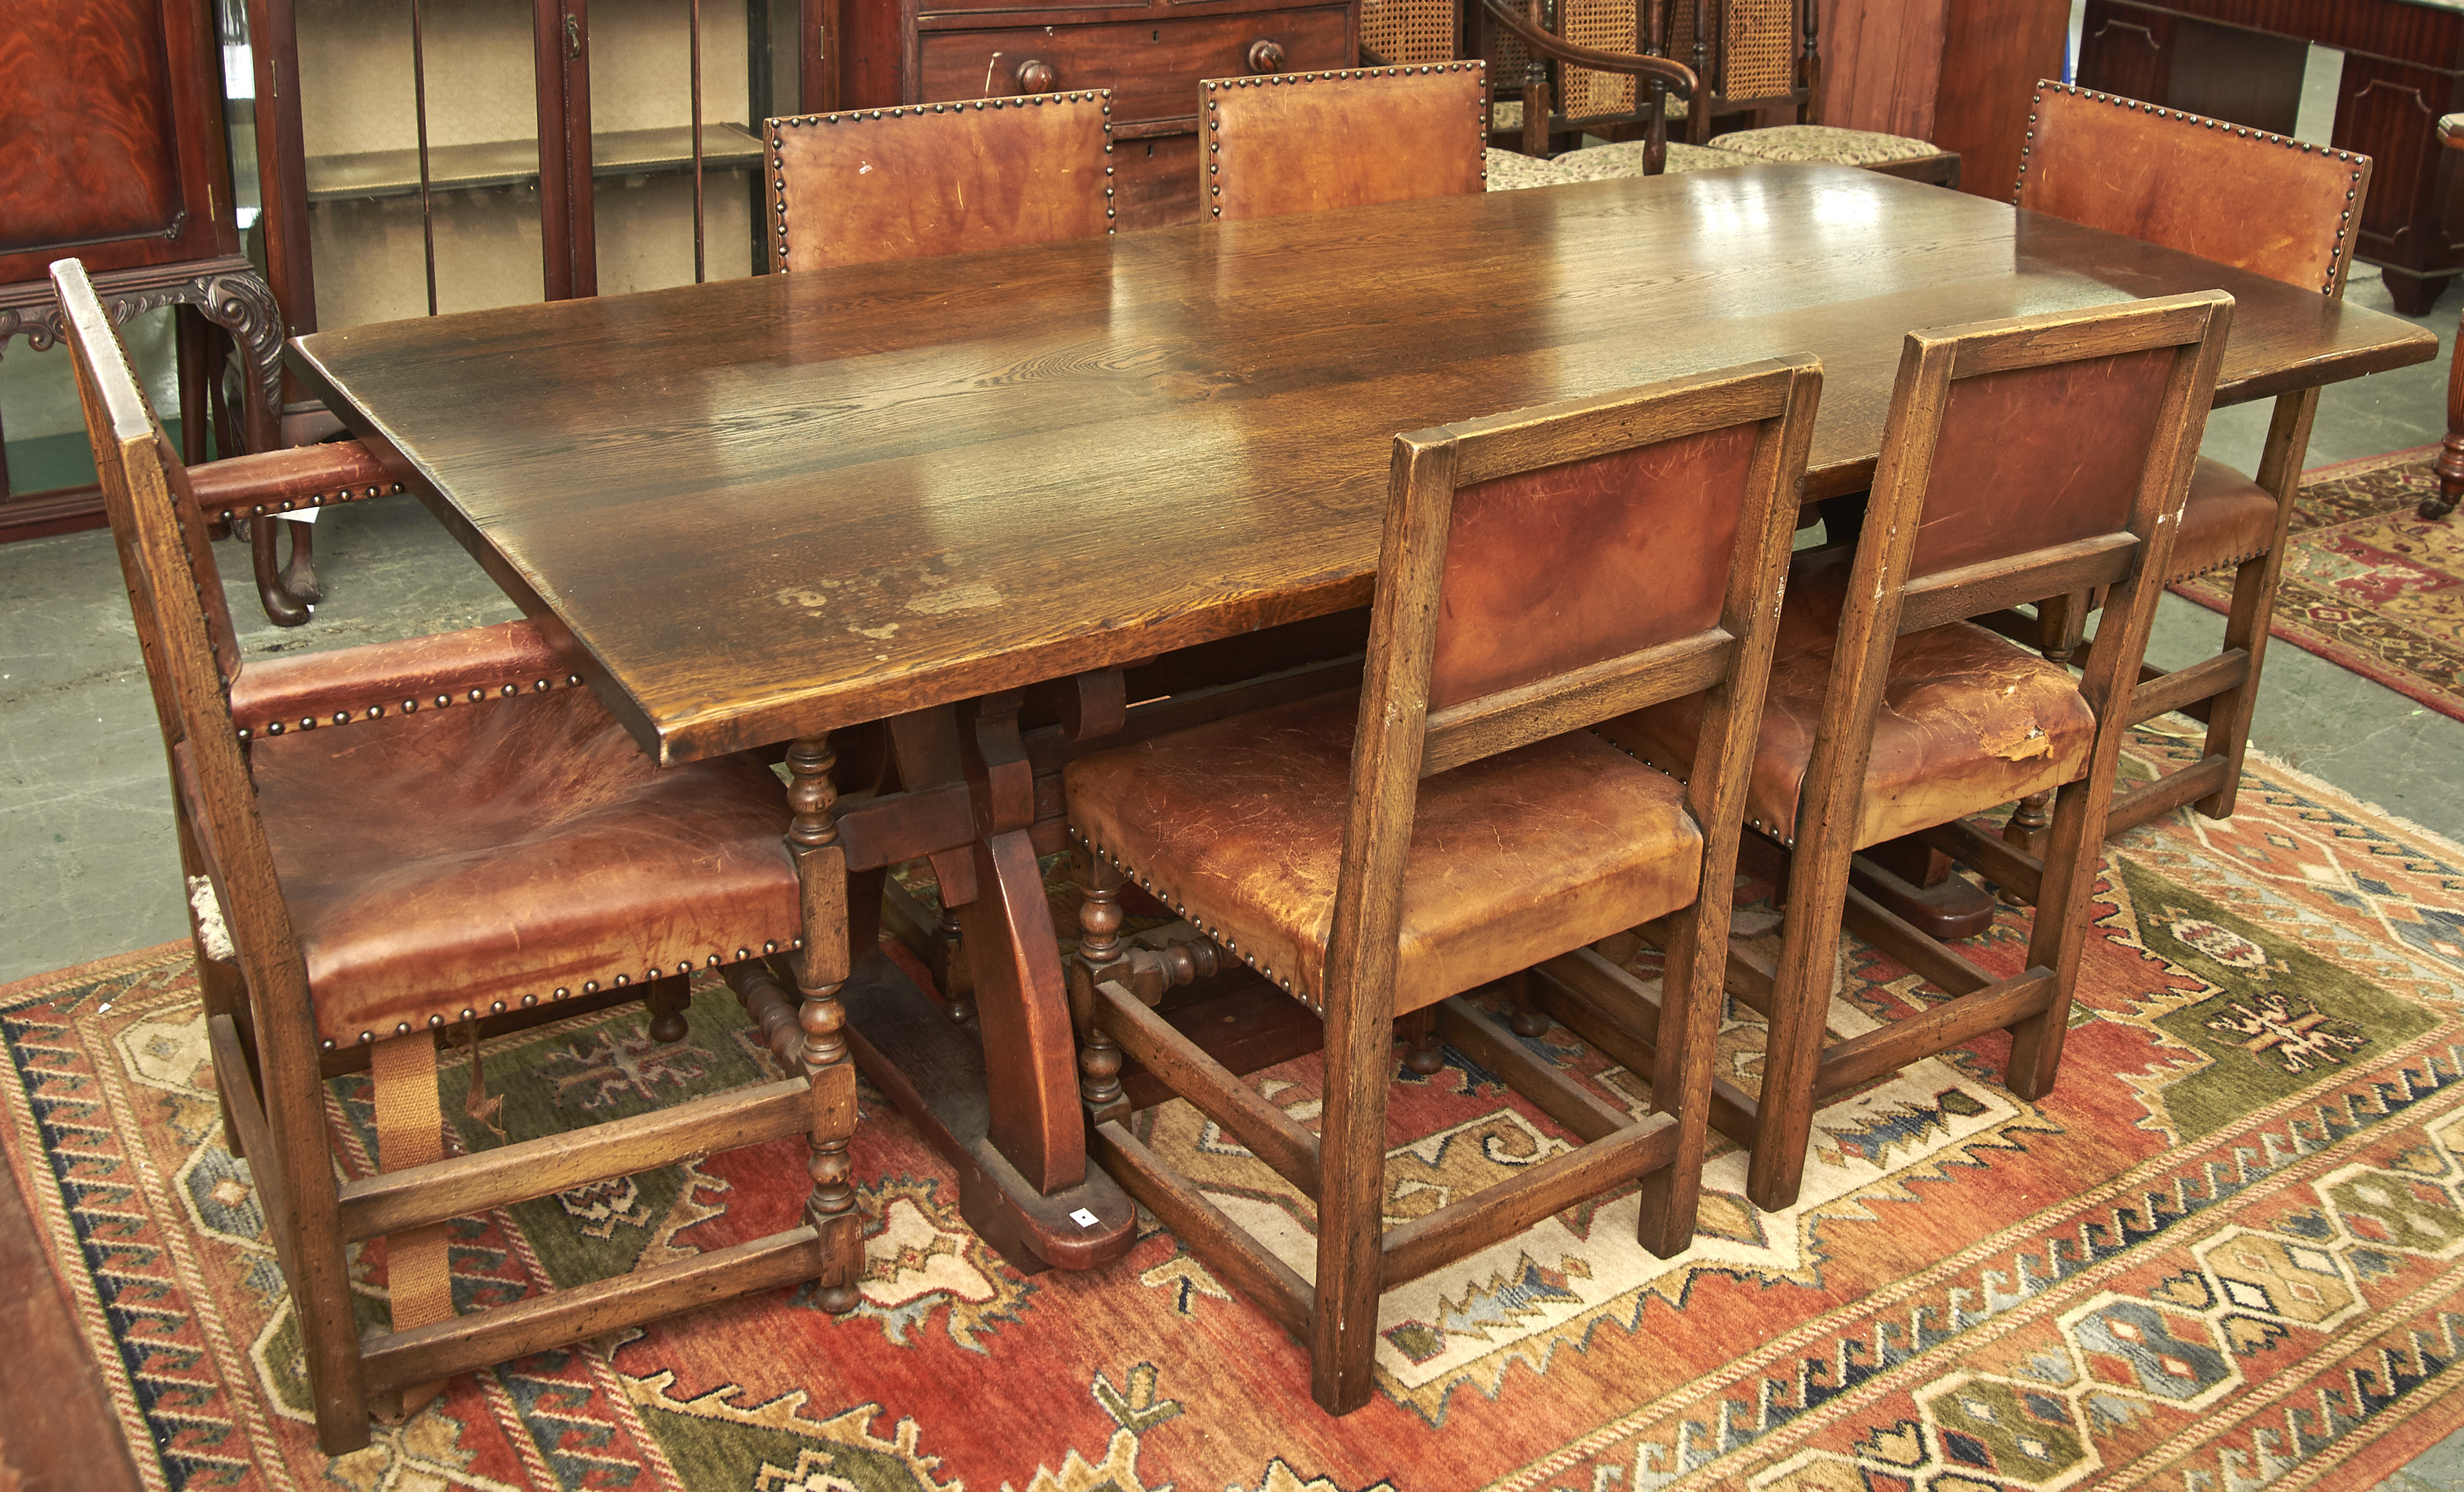 A REPRODUCTION OAK DINING TABLE OF TRESTLE FORM, THE RECTANGULAR TOP ABOVE YOLK STYLE TRESTLE ENDS